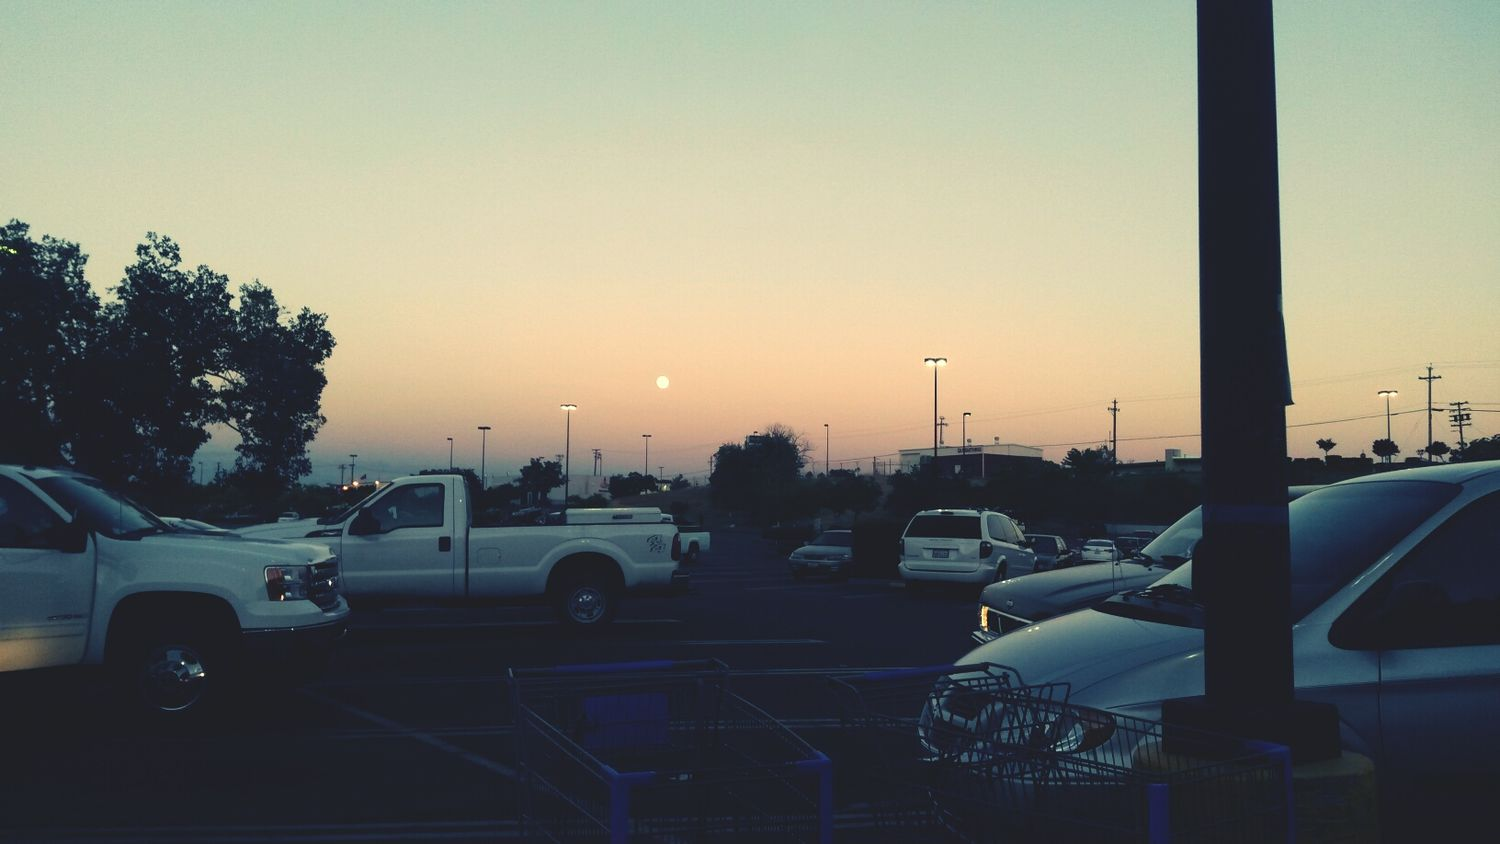 fuck all these ugly ass cars but damn, the sunset is beautiful tonight ??? Hanging Out Gettin Faded Redbox